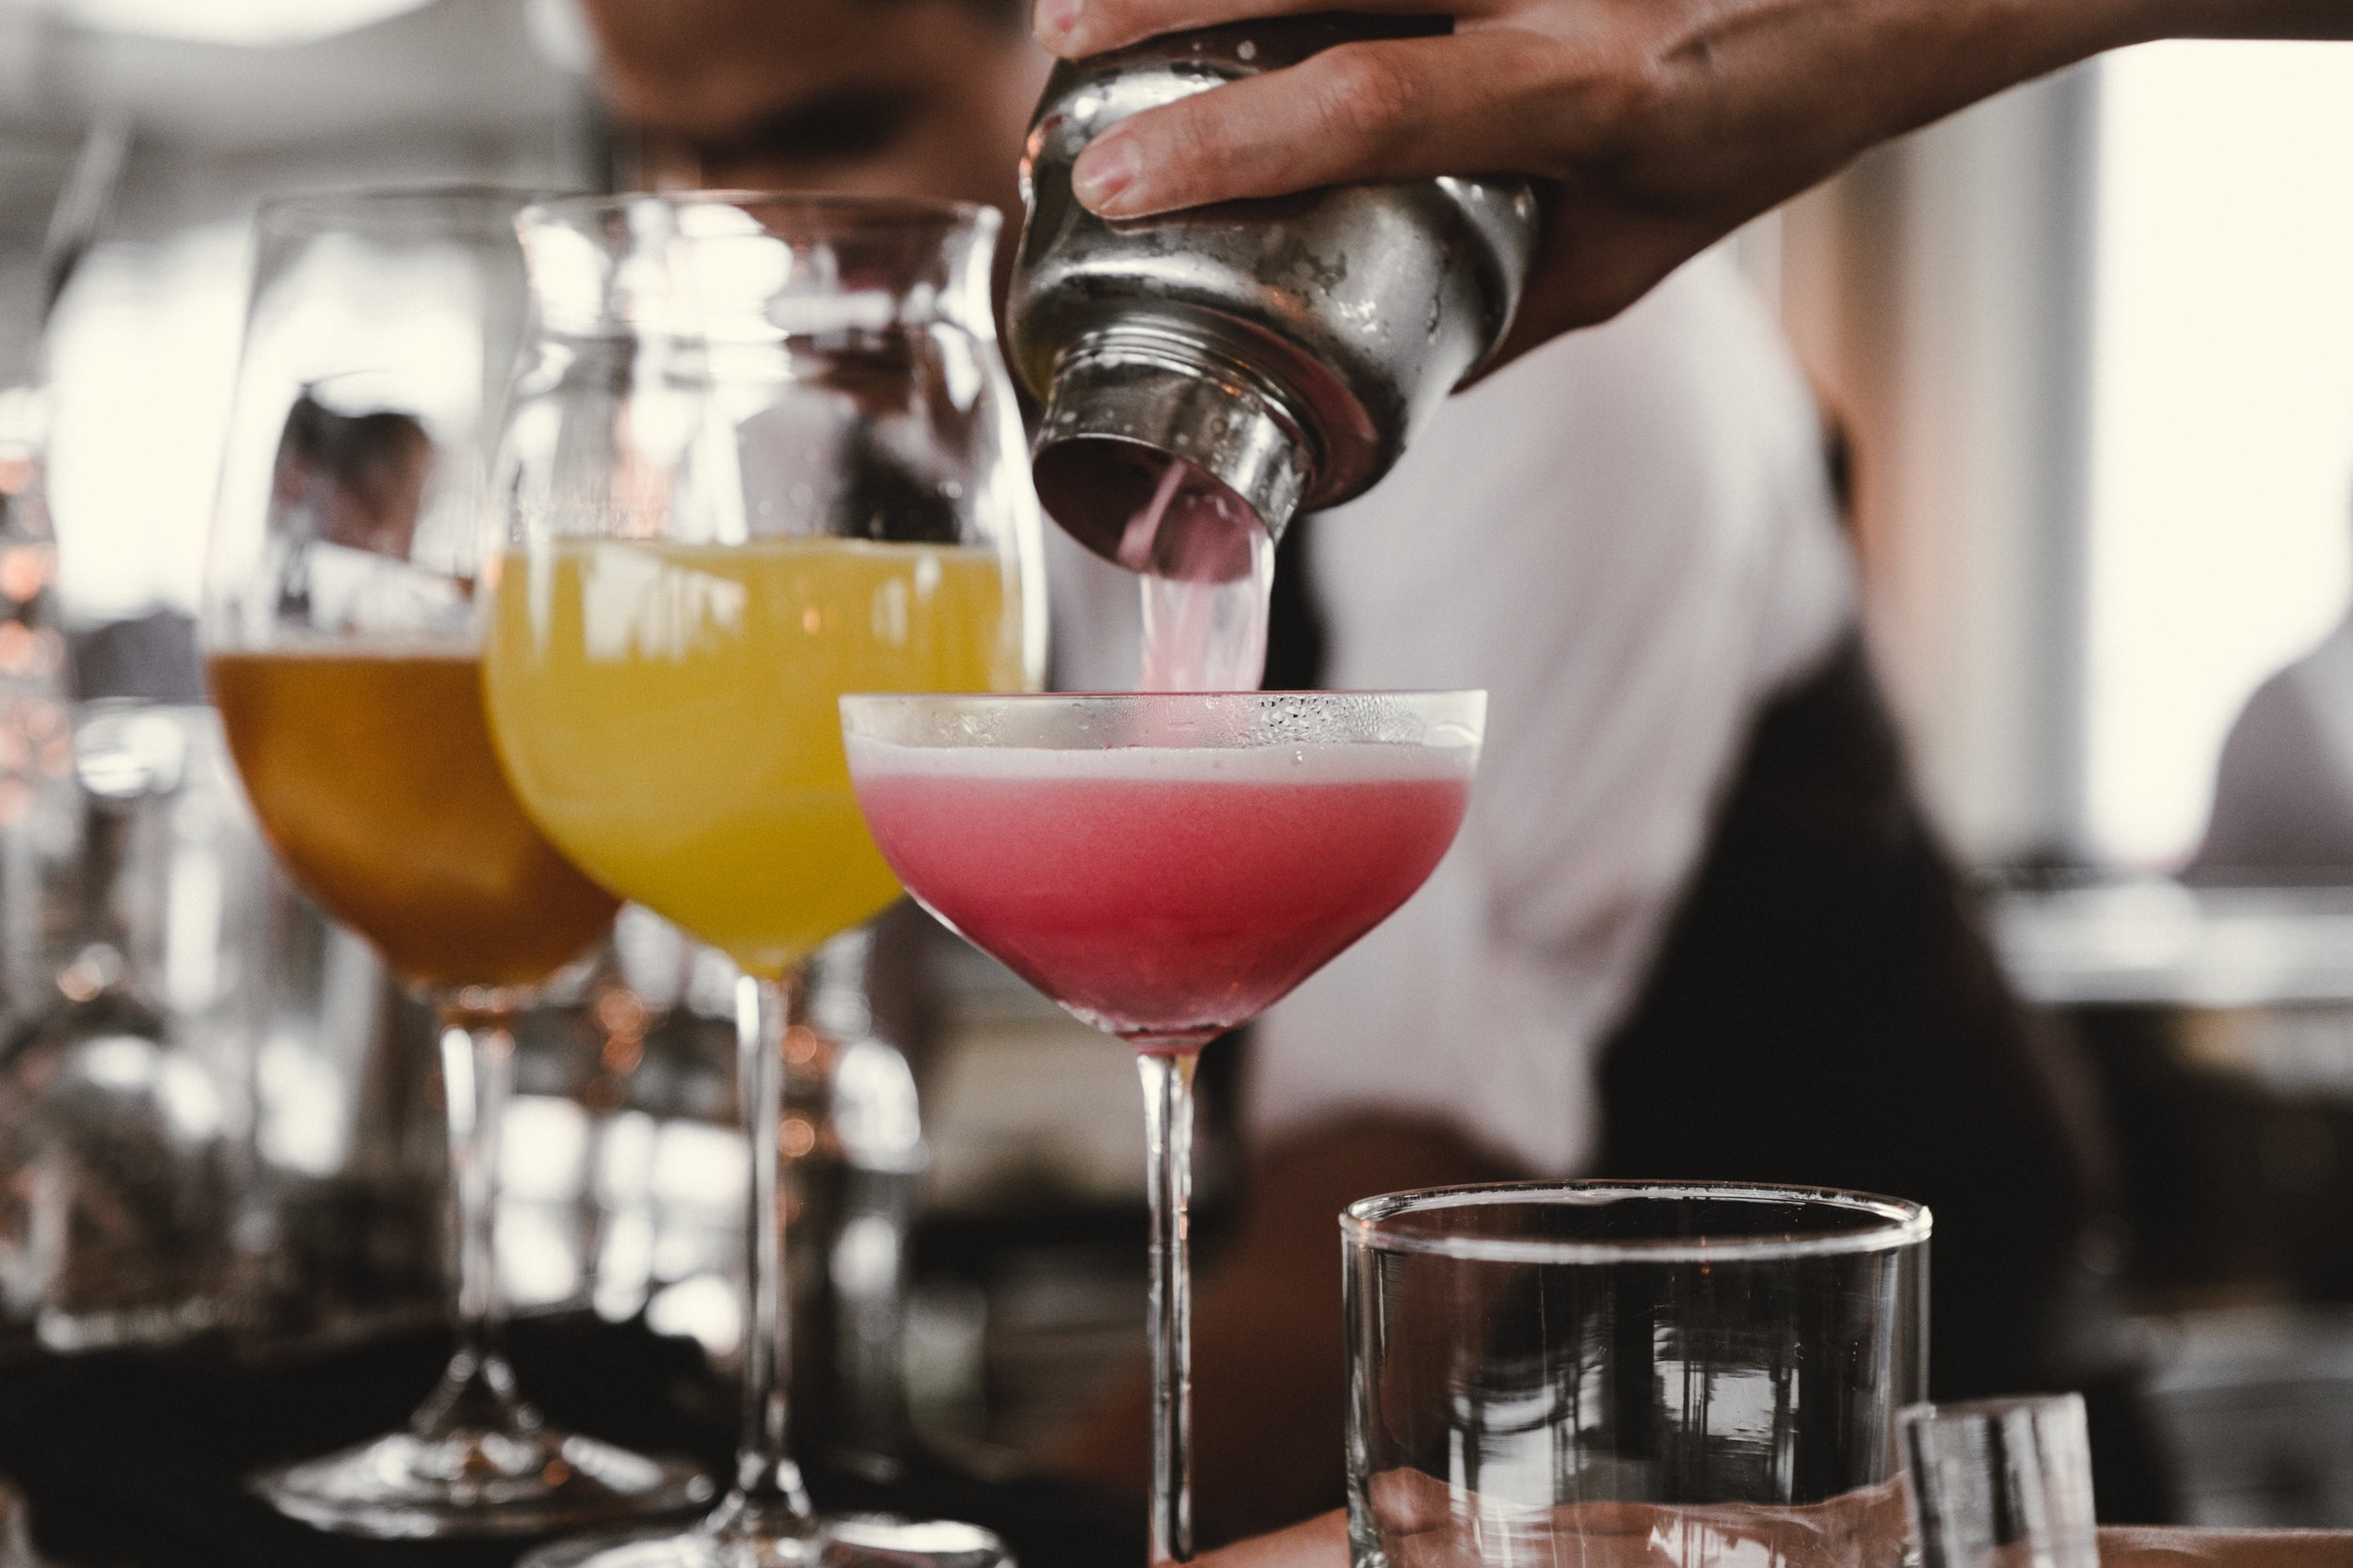 FULL CRAFT COCKTAIL BAR - full bar, cocktails, beer & winestarting at $27 per person